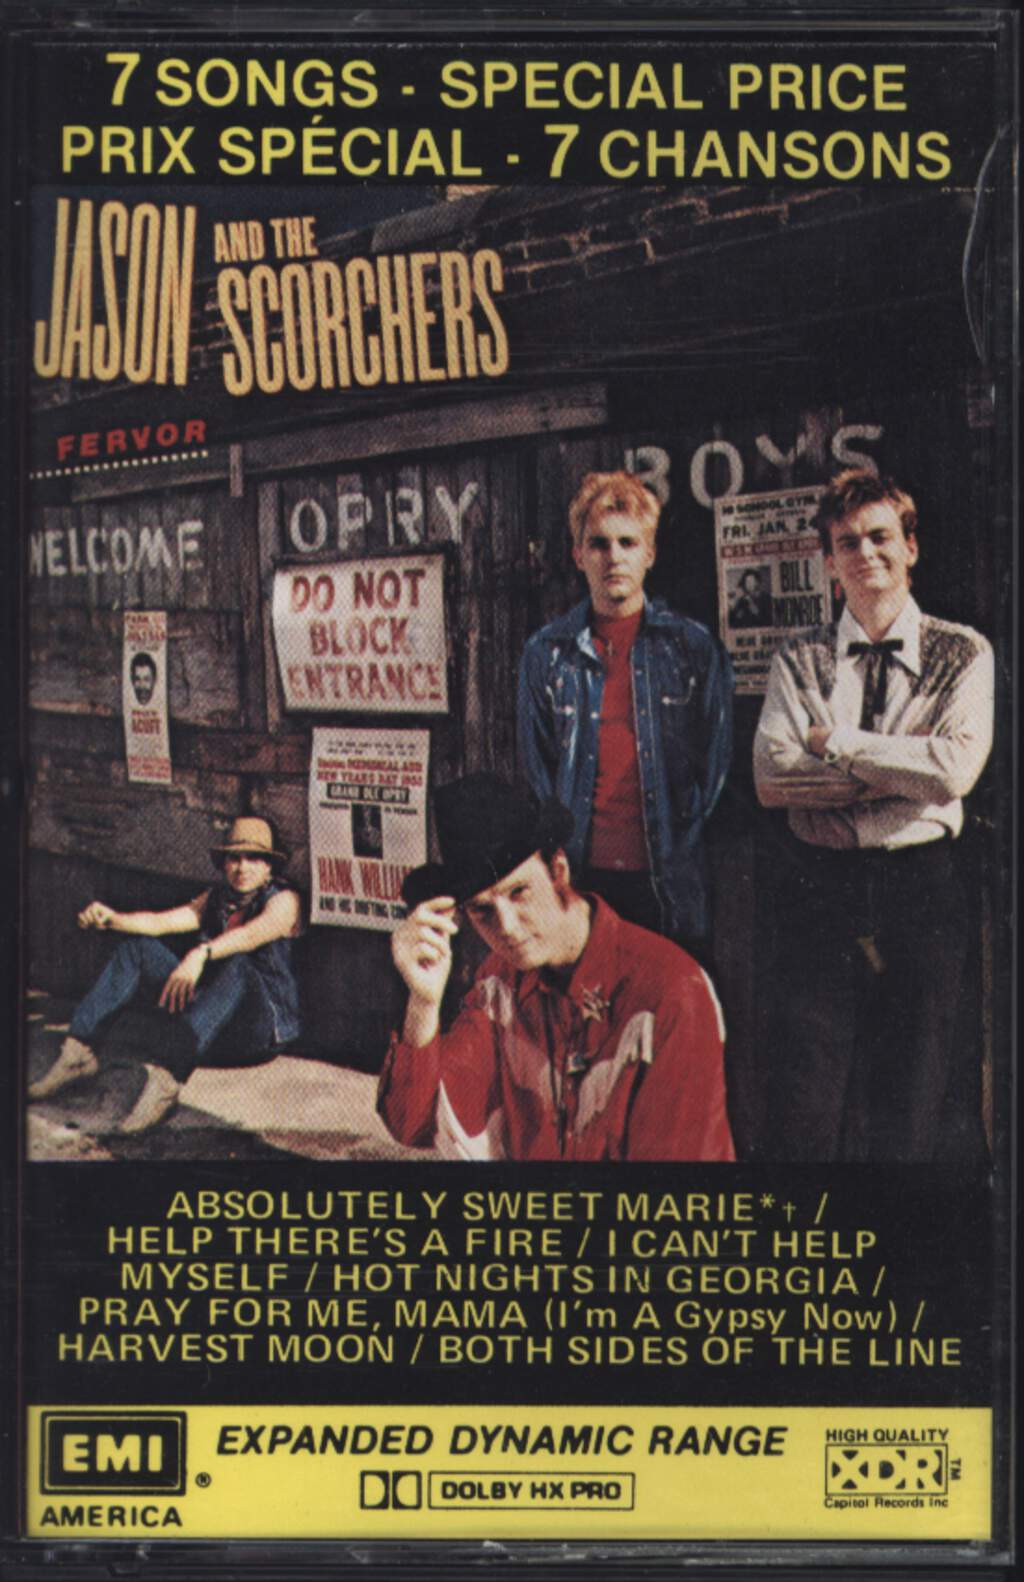 Jason & the Scorchers: Fervor, Compact Cassette